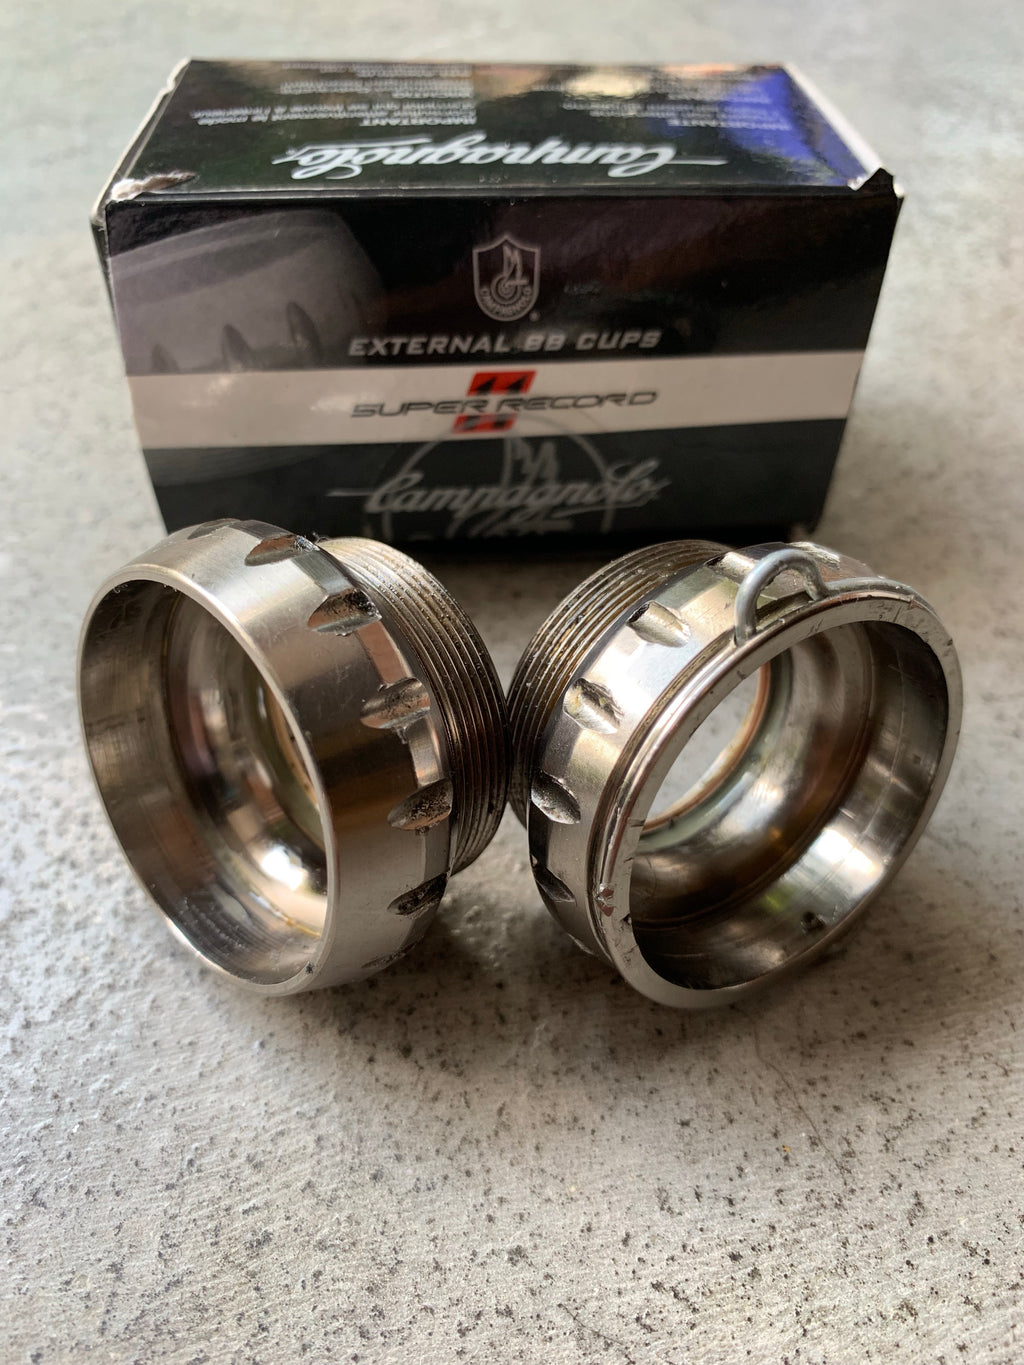 Campagnolo Cups